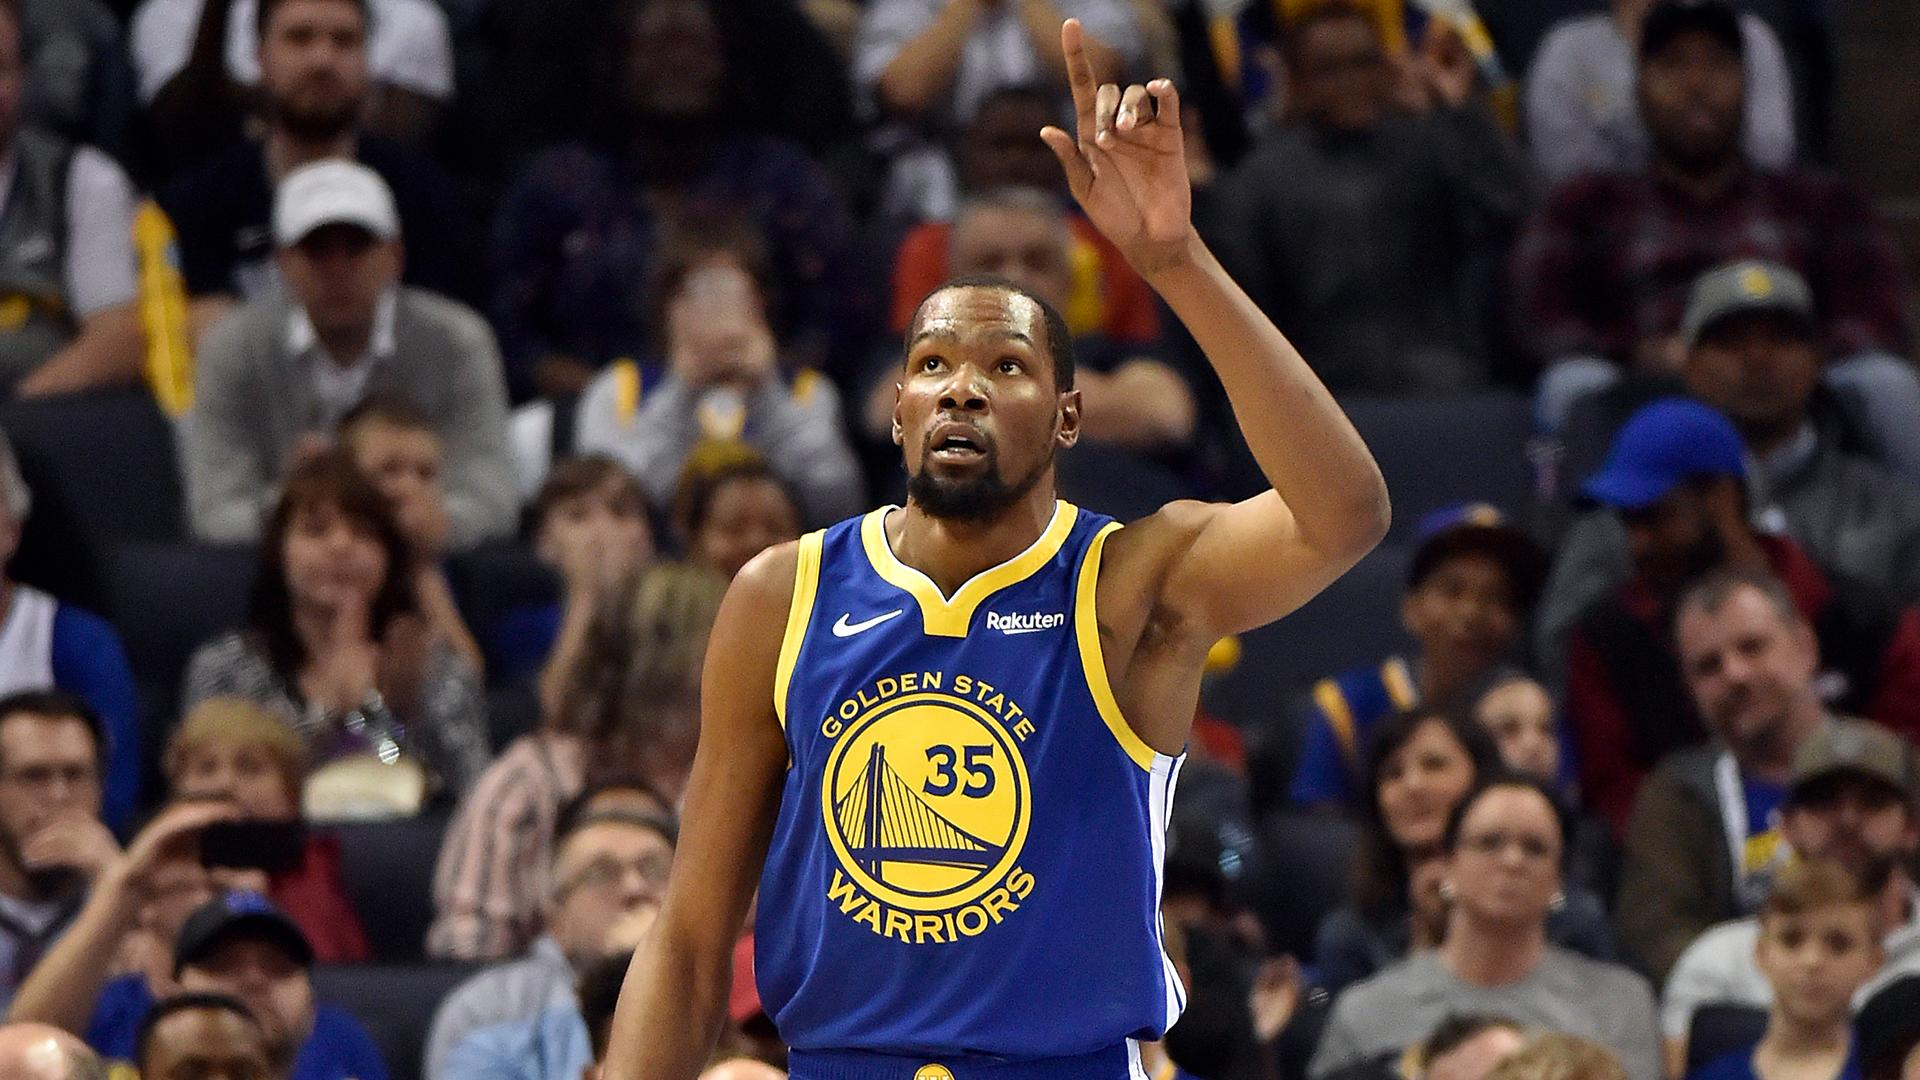 bf8e0968d4d6 Kevin Durant is doing  whatever he wants  against Warriors  opponents